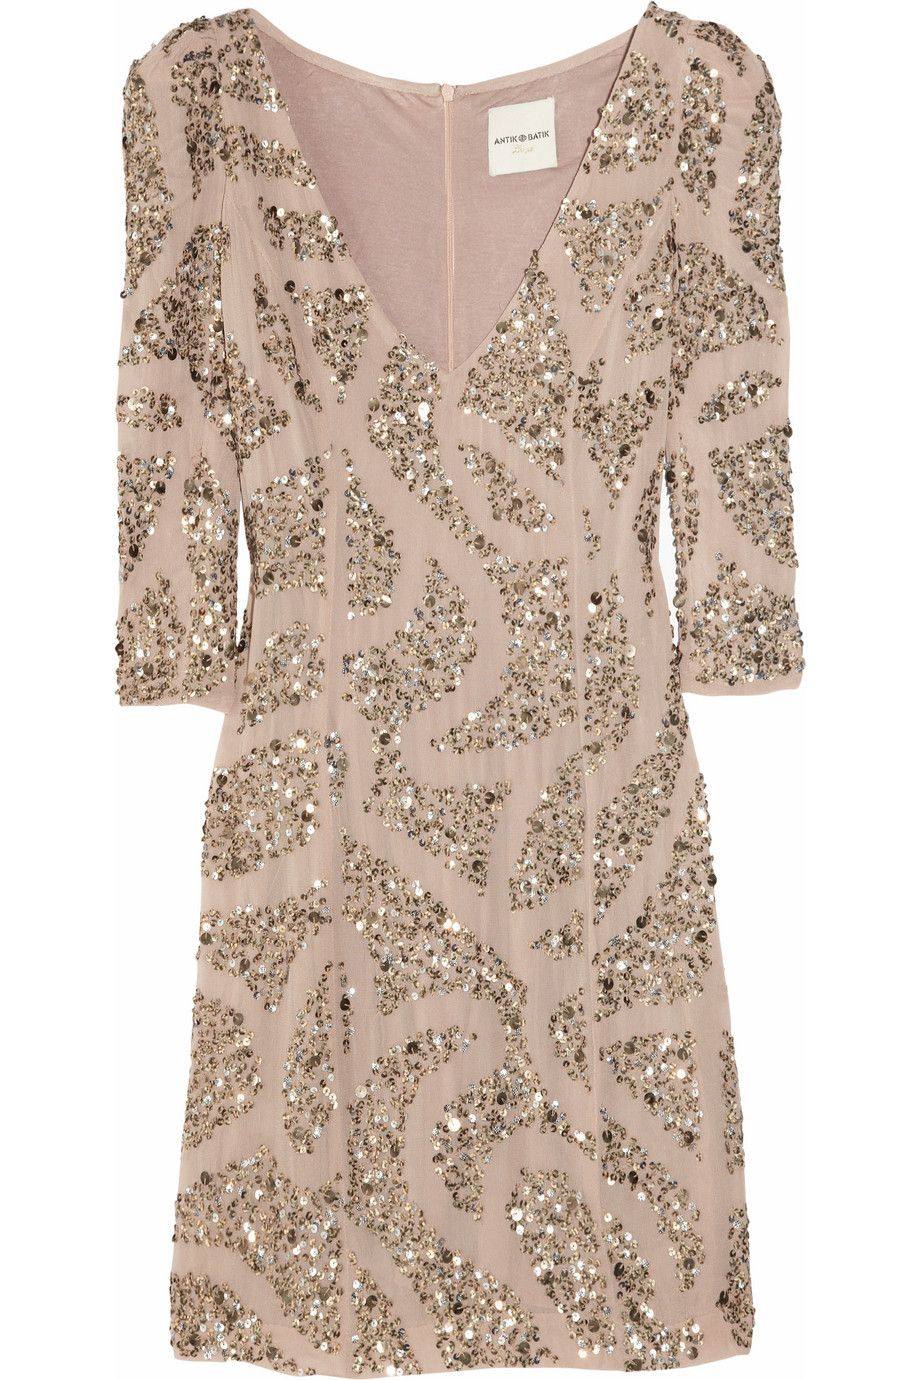 Sequin-embellished crepe dress by Antik Batik  Well Dressed ...